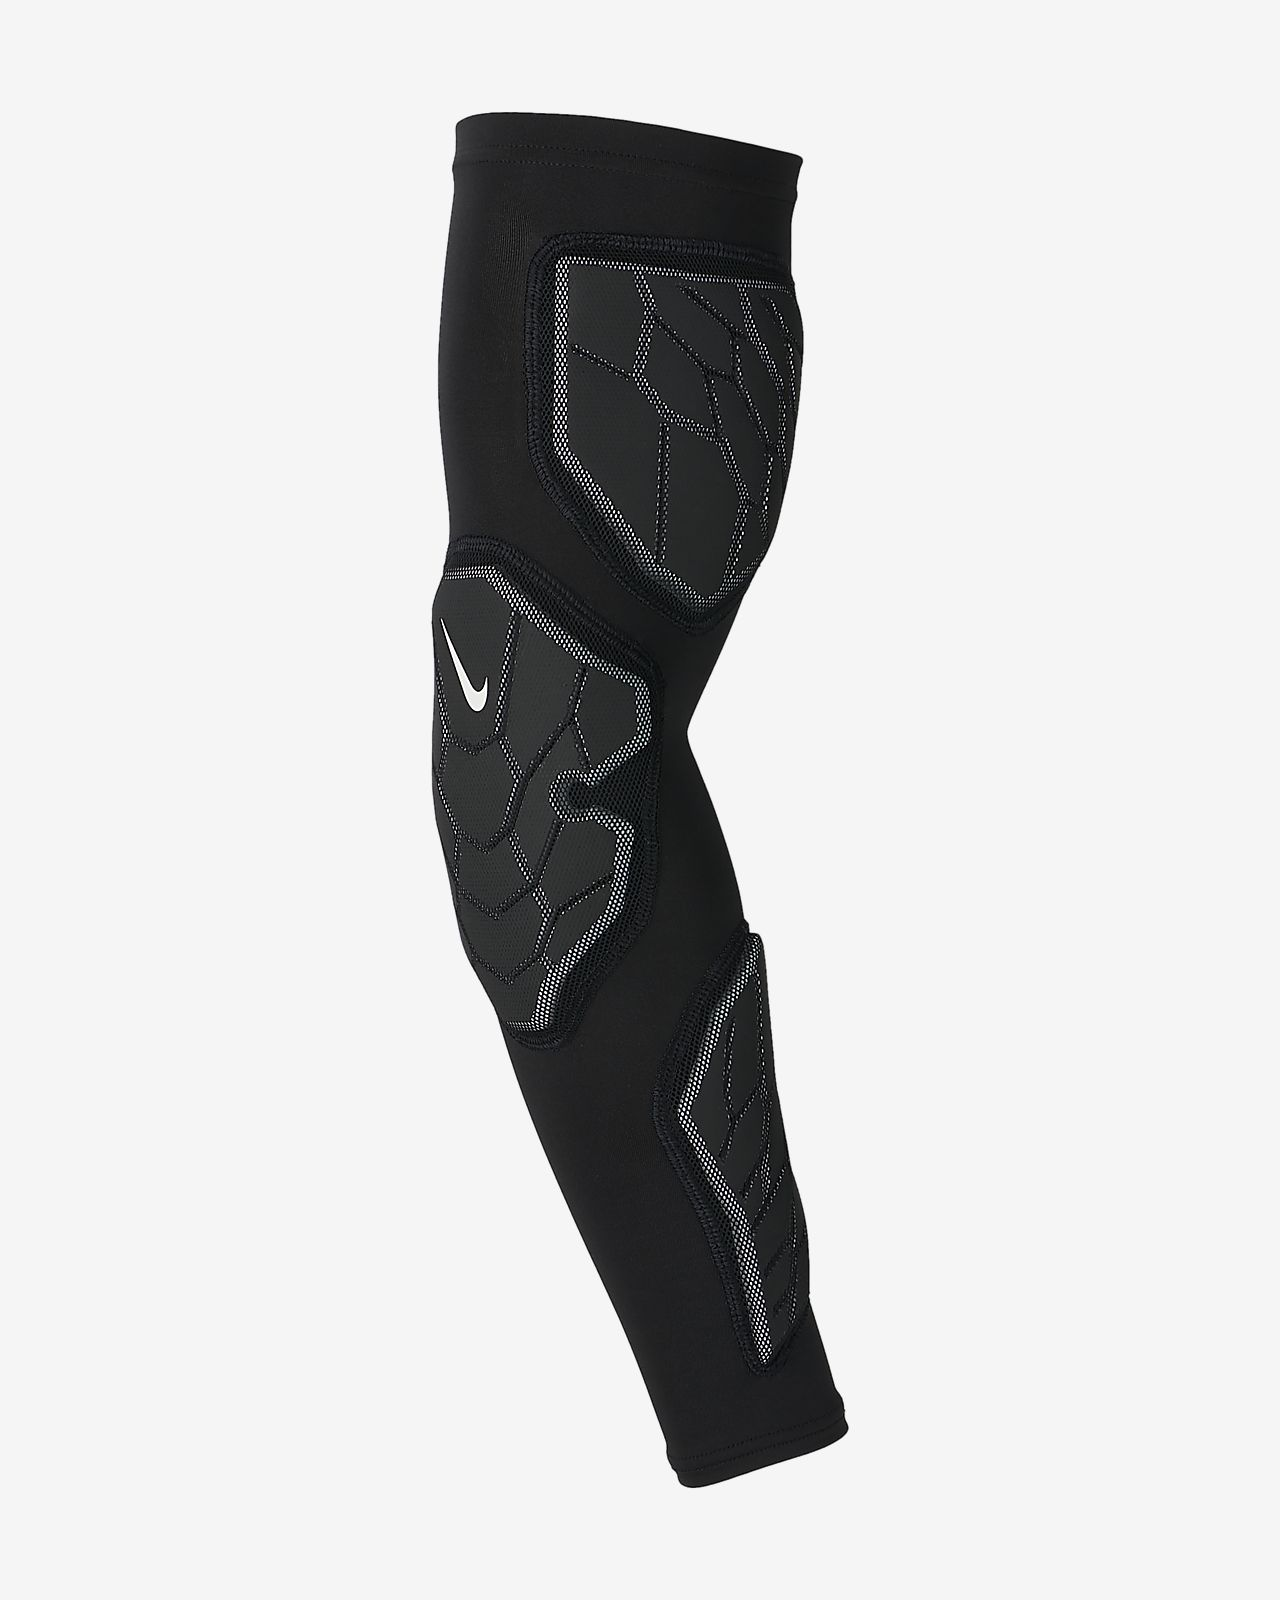 Nike Pro HyperStrong Padded Arm Sleeve 3.0 (Right)